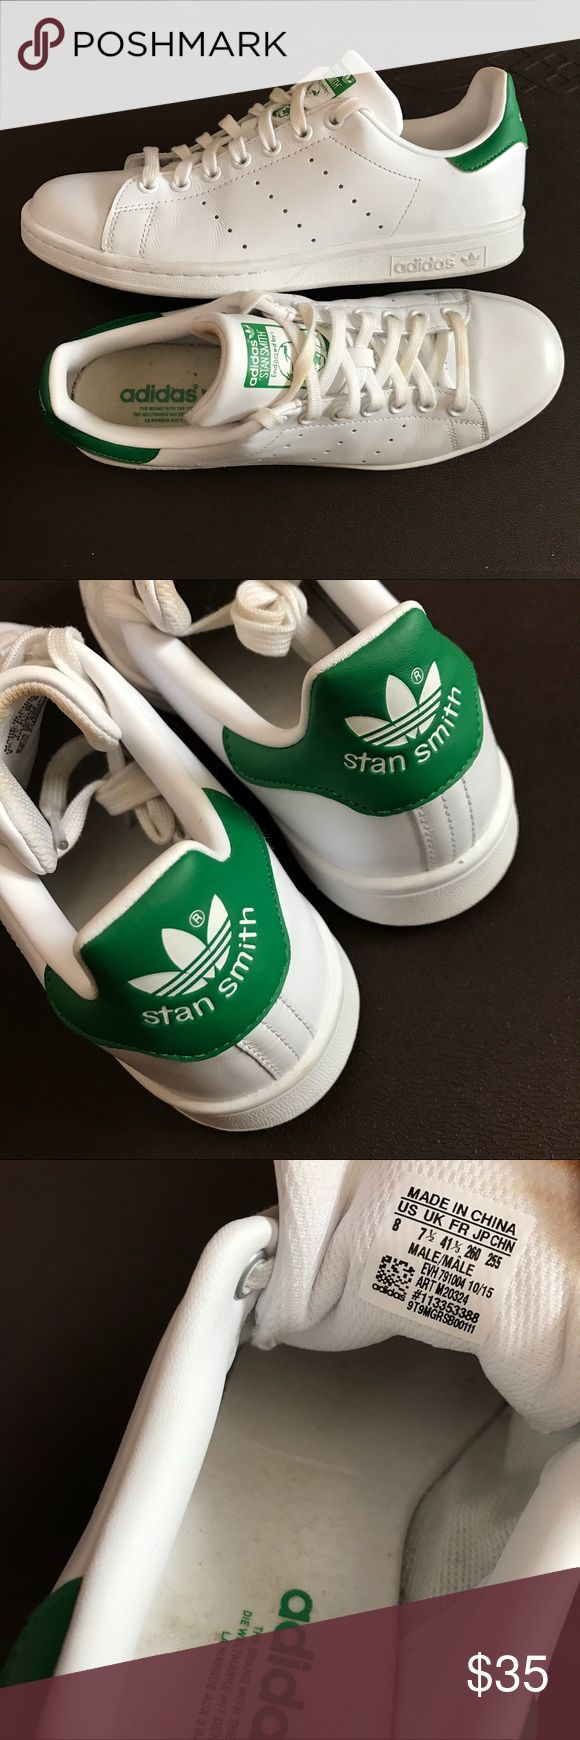 Adidas Original Stan Smith White Sneakers Excellent condition like new. Only worn few hours. Male size 8 (unisex shoe). Ready to ship! adidas original Shoes Sneakers